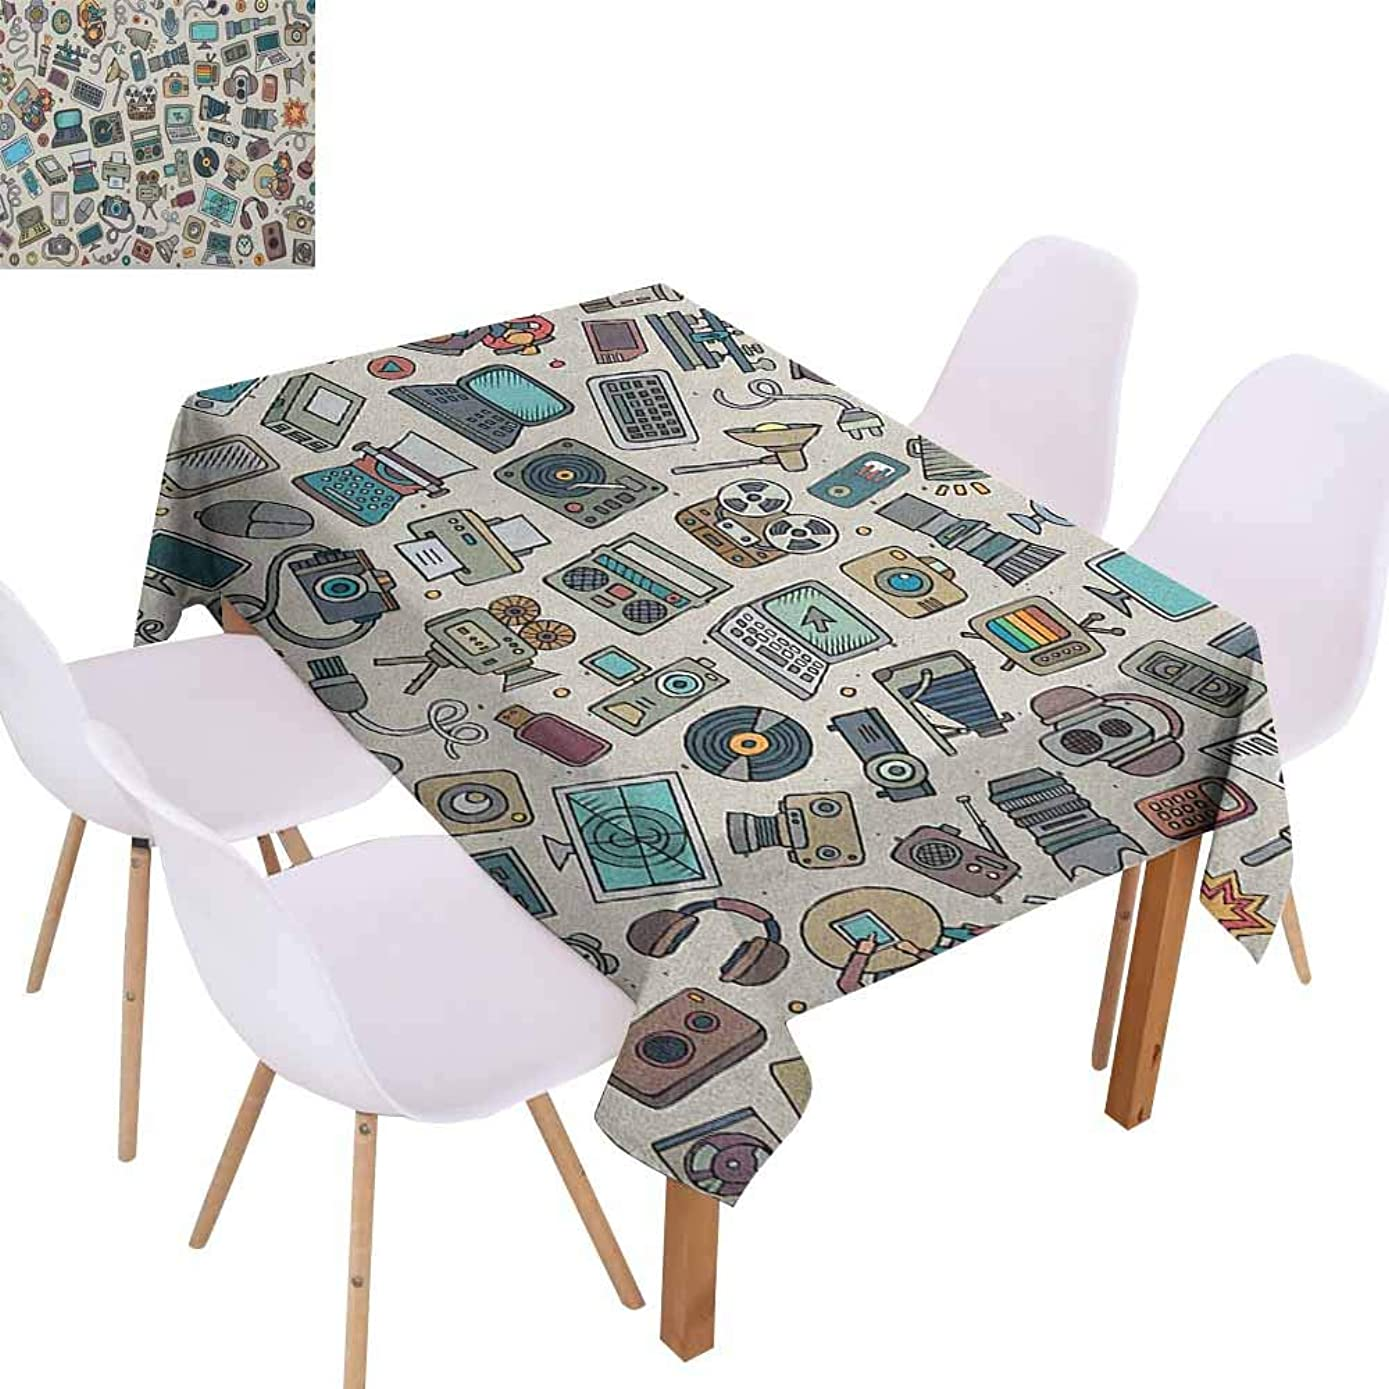 Washable Table Cloth Doodle Complation of Various Office Gadgets Recorder Tv Laptop Monitor Tablet Switch Mouse Easy to Clean W52 xL72 Multicolor